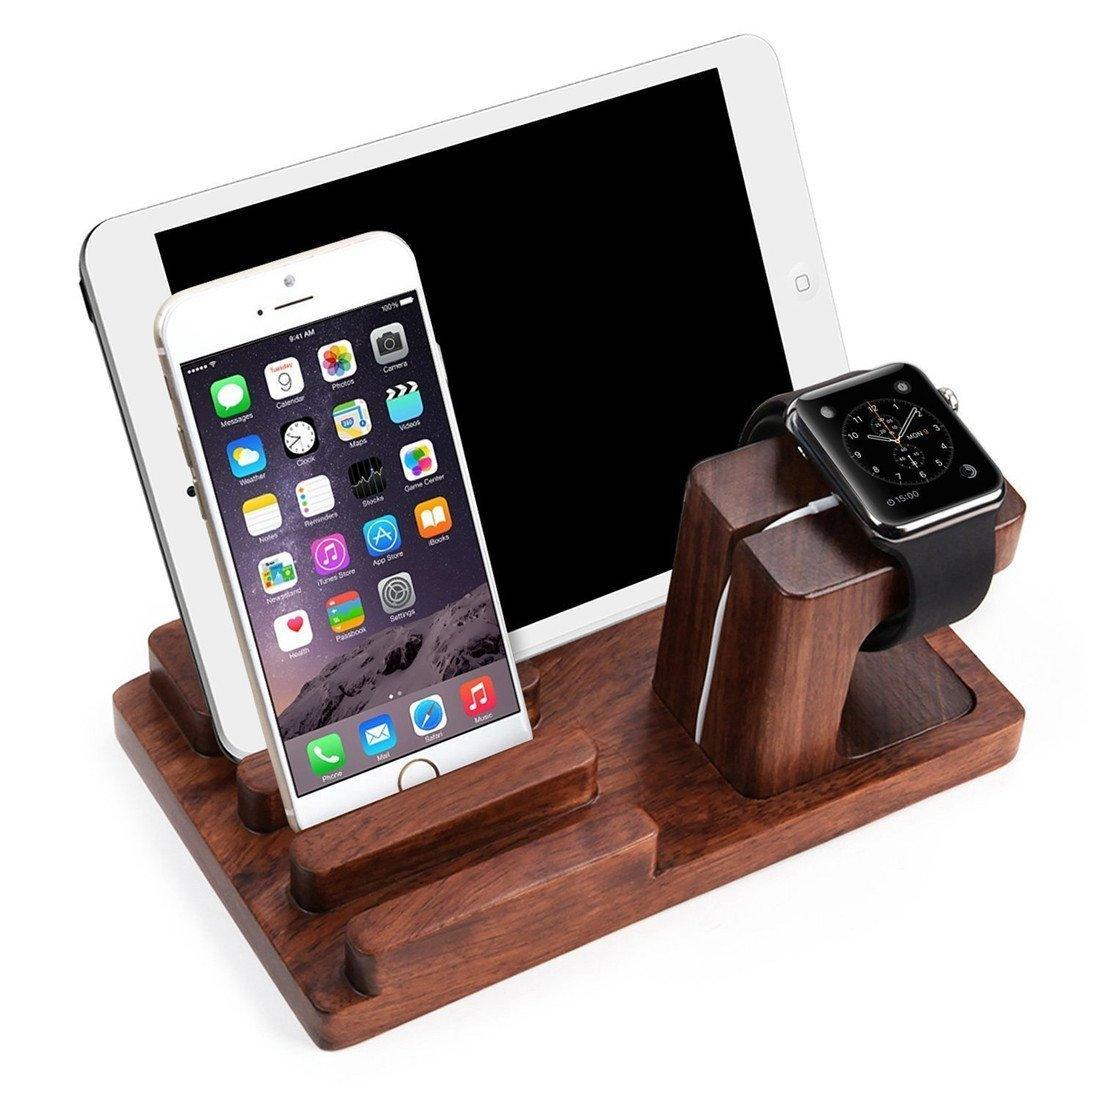 Amazon.com: JUNCH Wooden Charge Dock Holder For IWatch And Docking Station  Cradle Bracket For IPod, IPhone, IPad And Smartphones And Tablets, ...